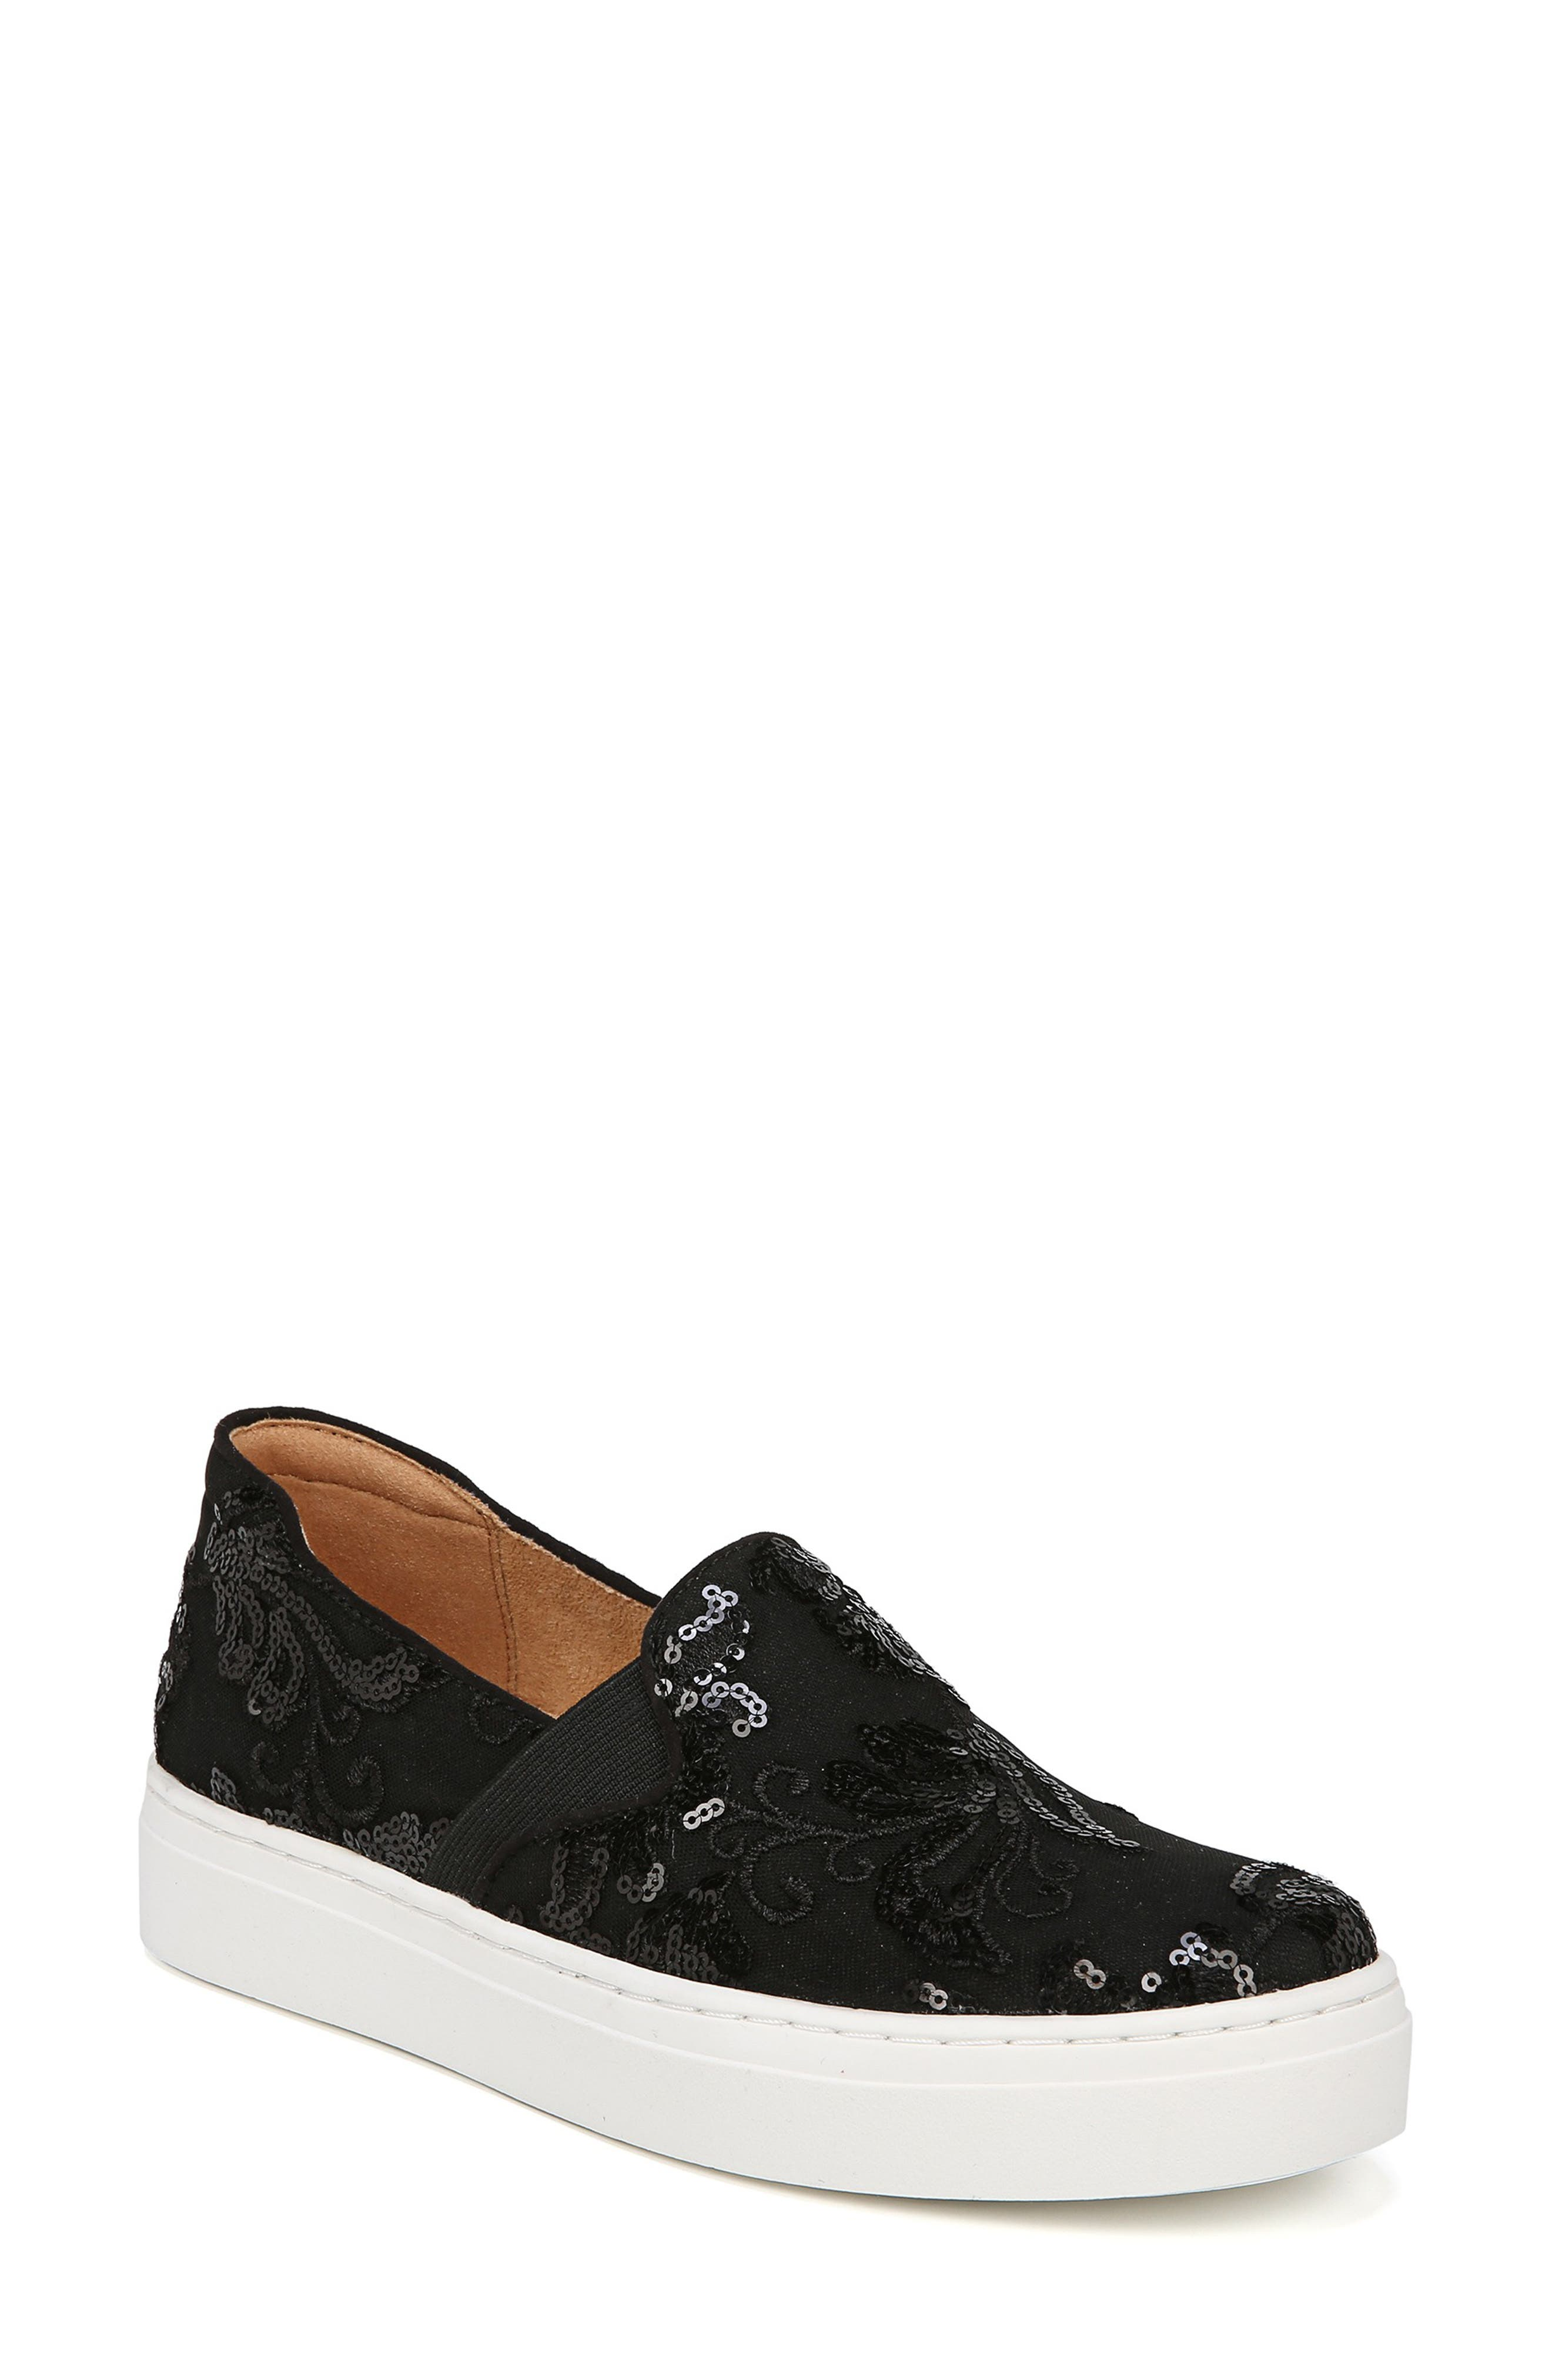 Naturalizer Carly Slip-On Sneaker, Black